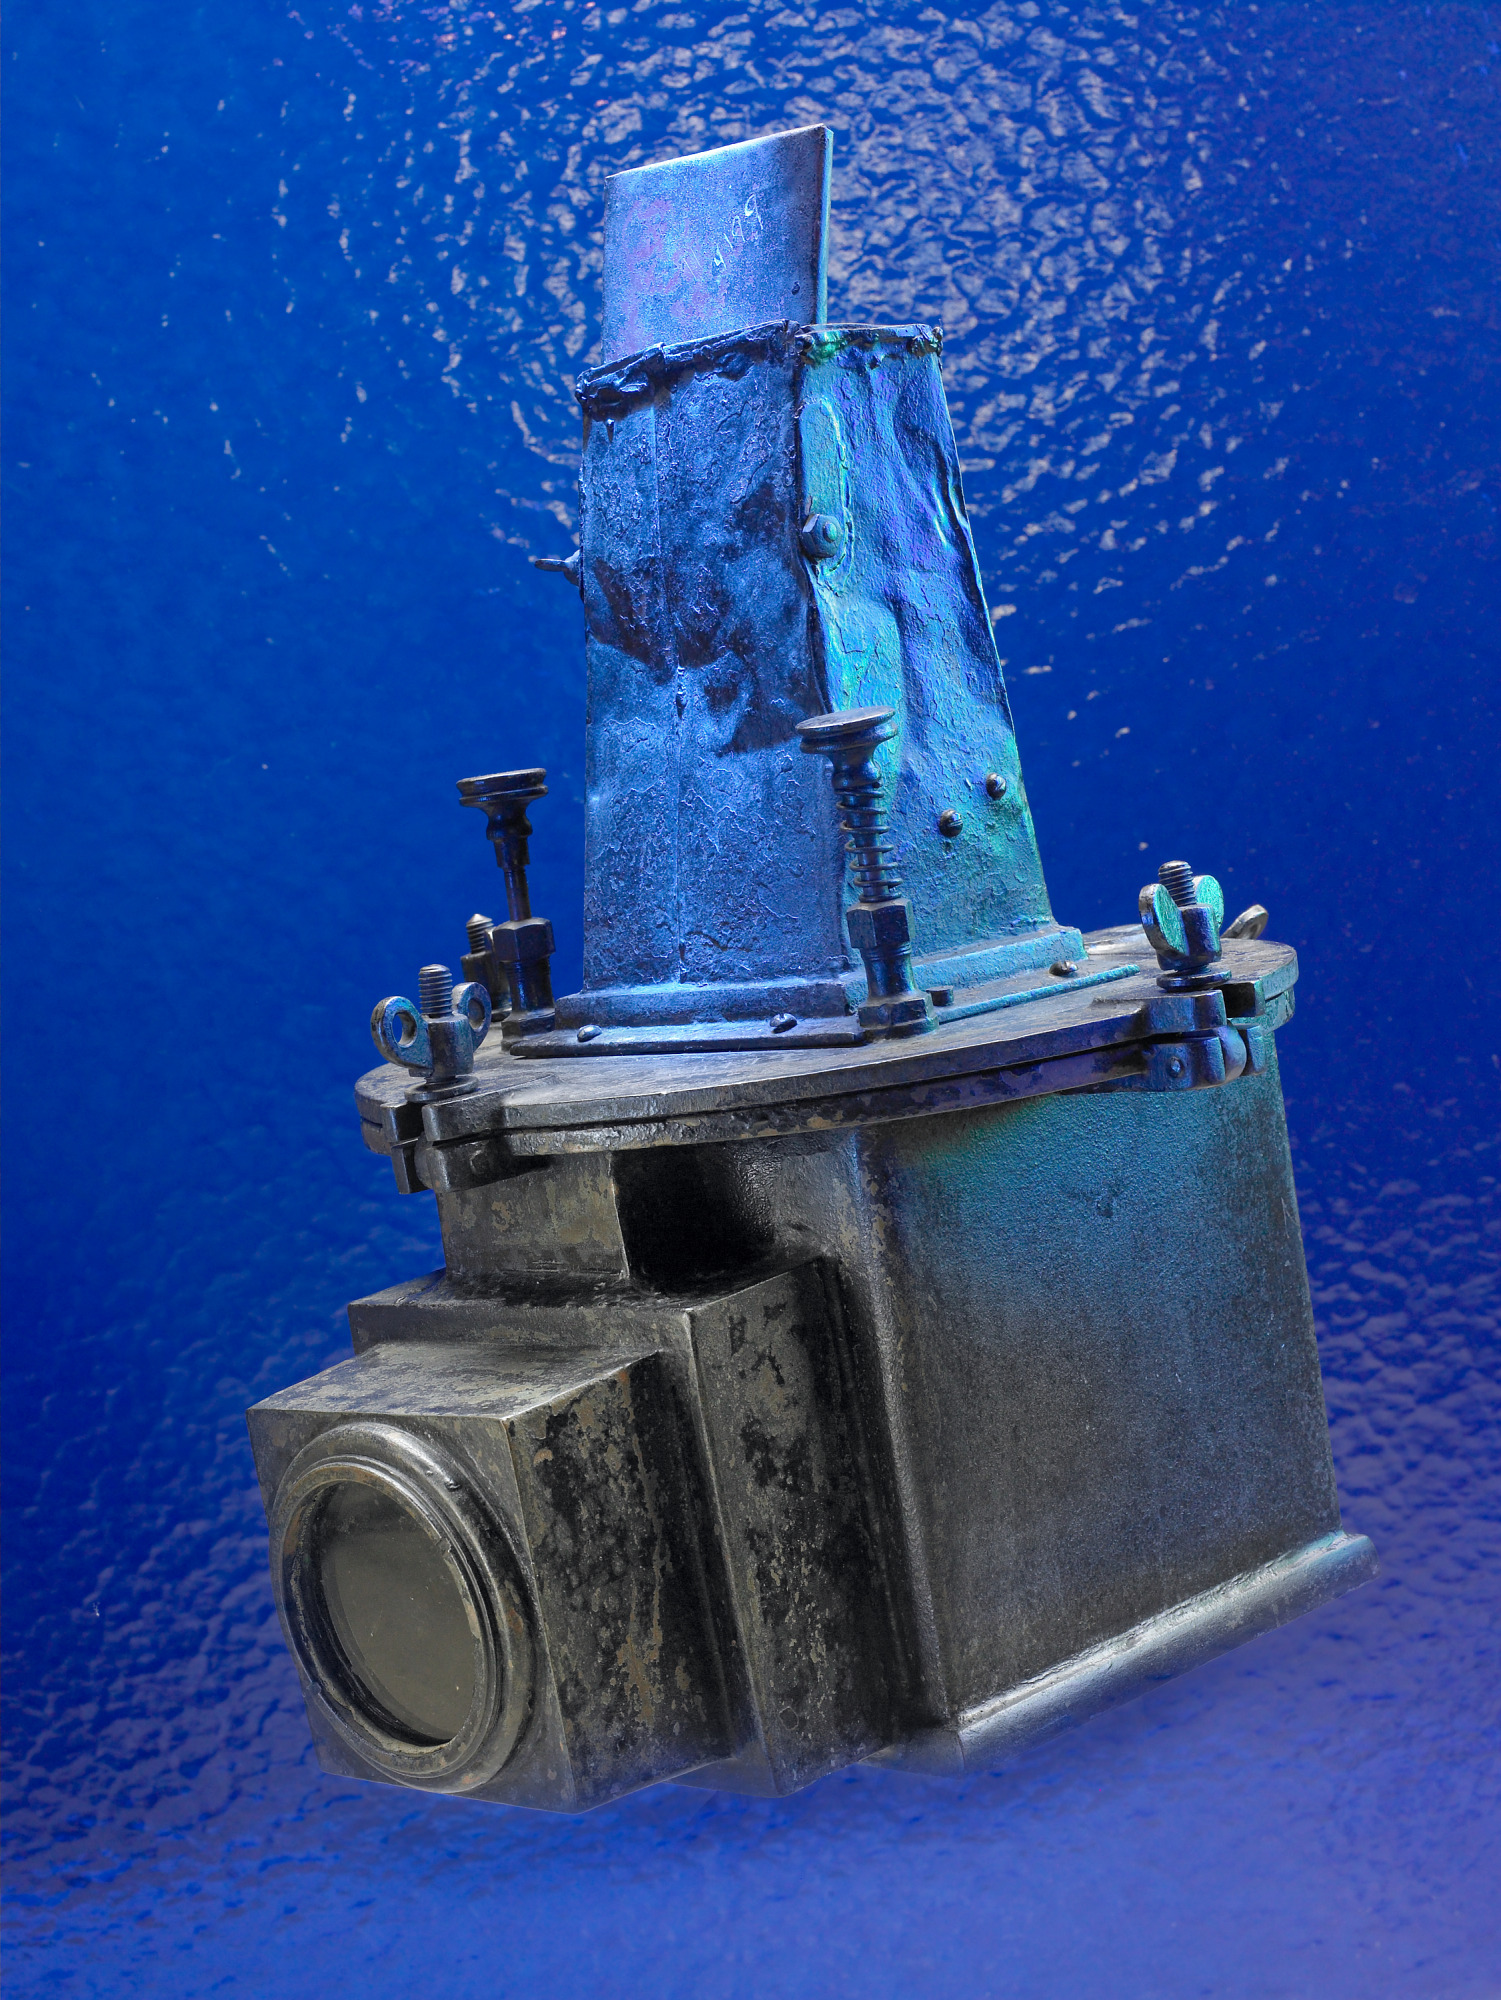 images for Auto-Graflex Camera in Underwater Housing